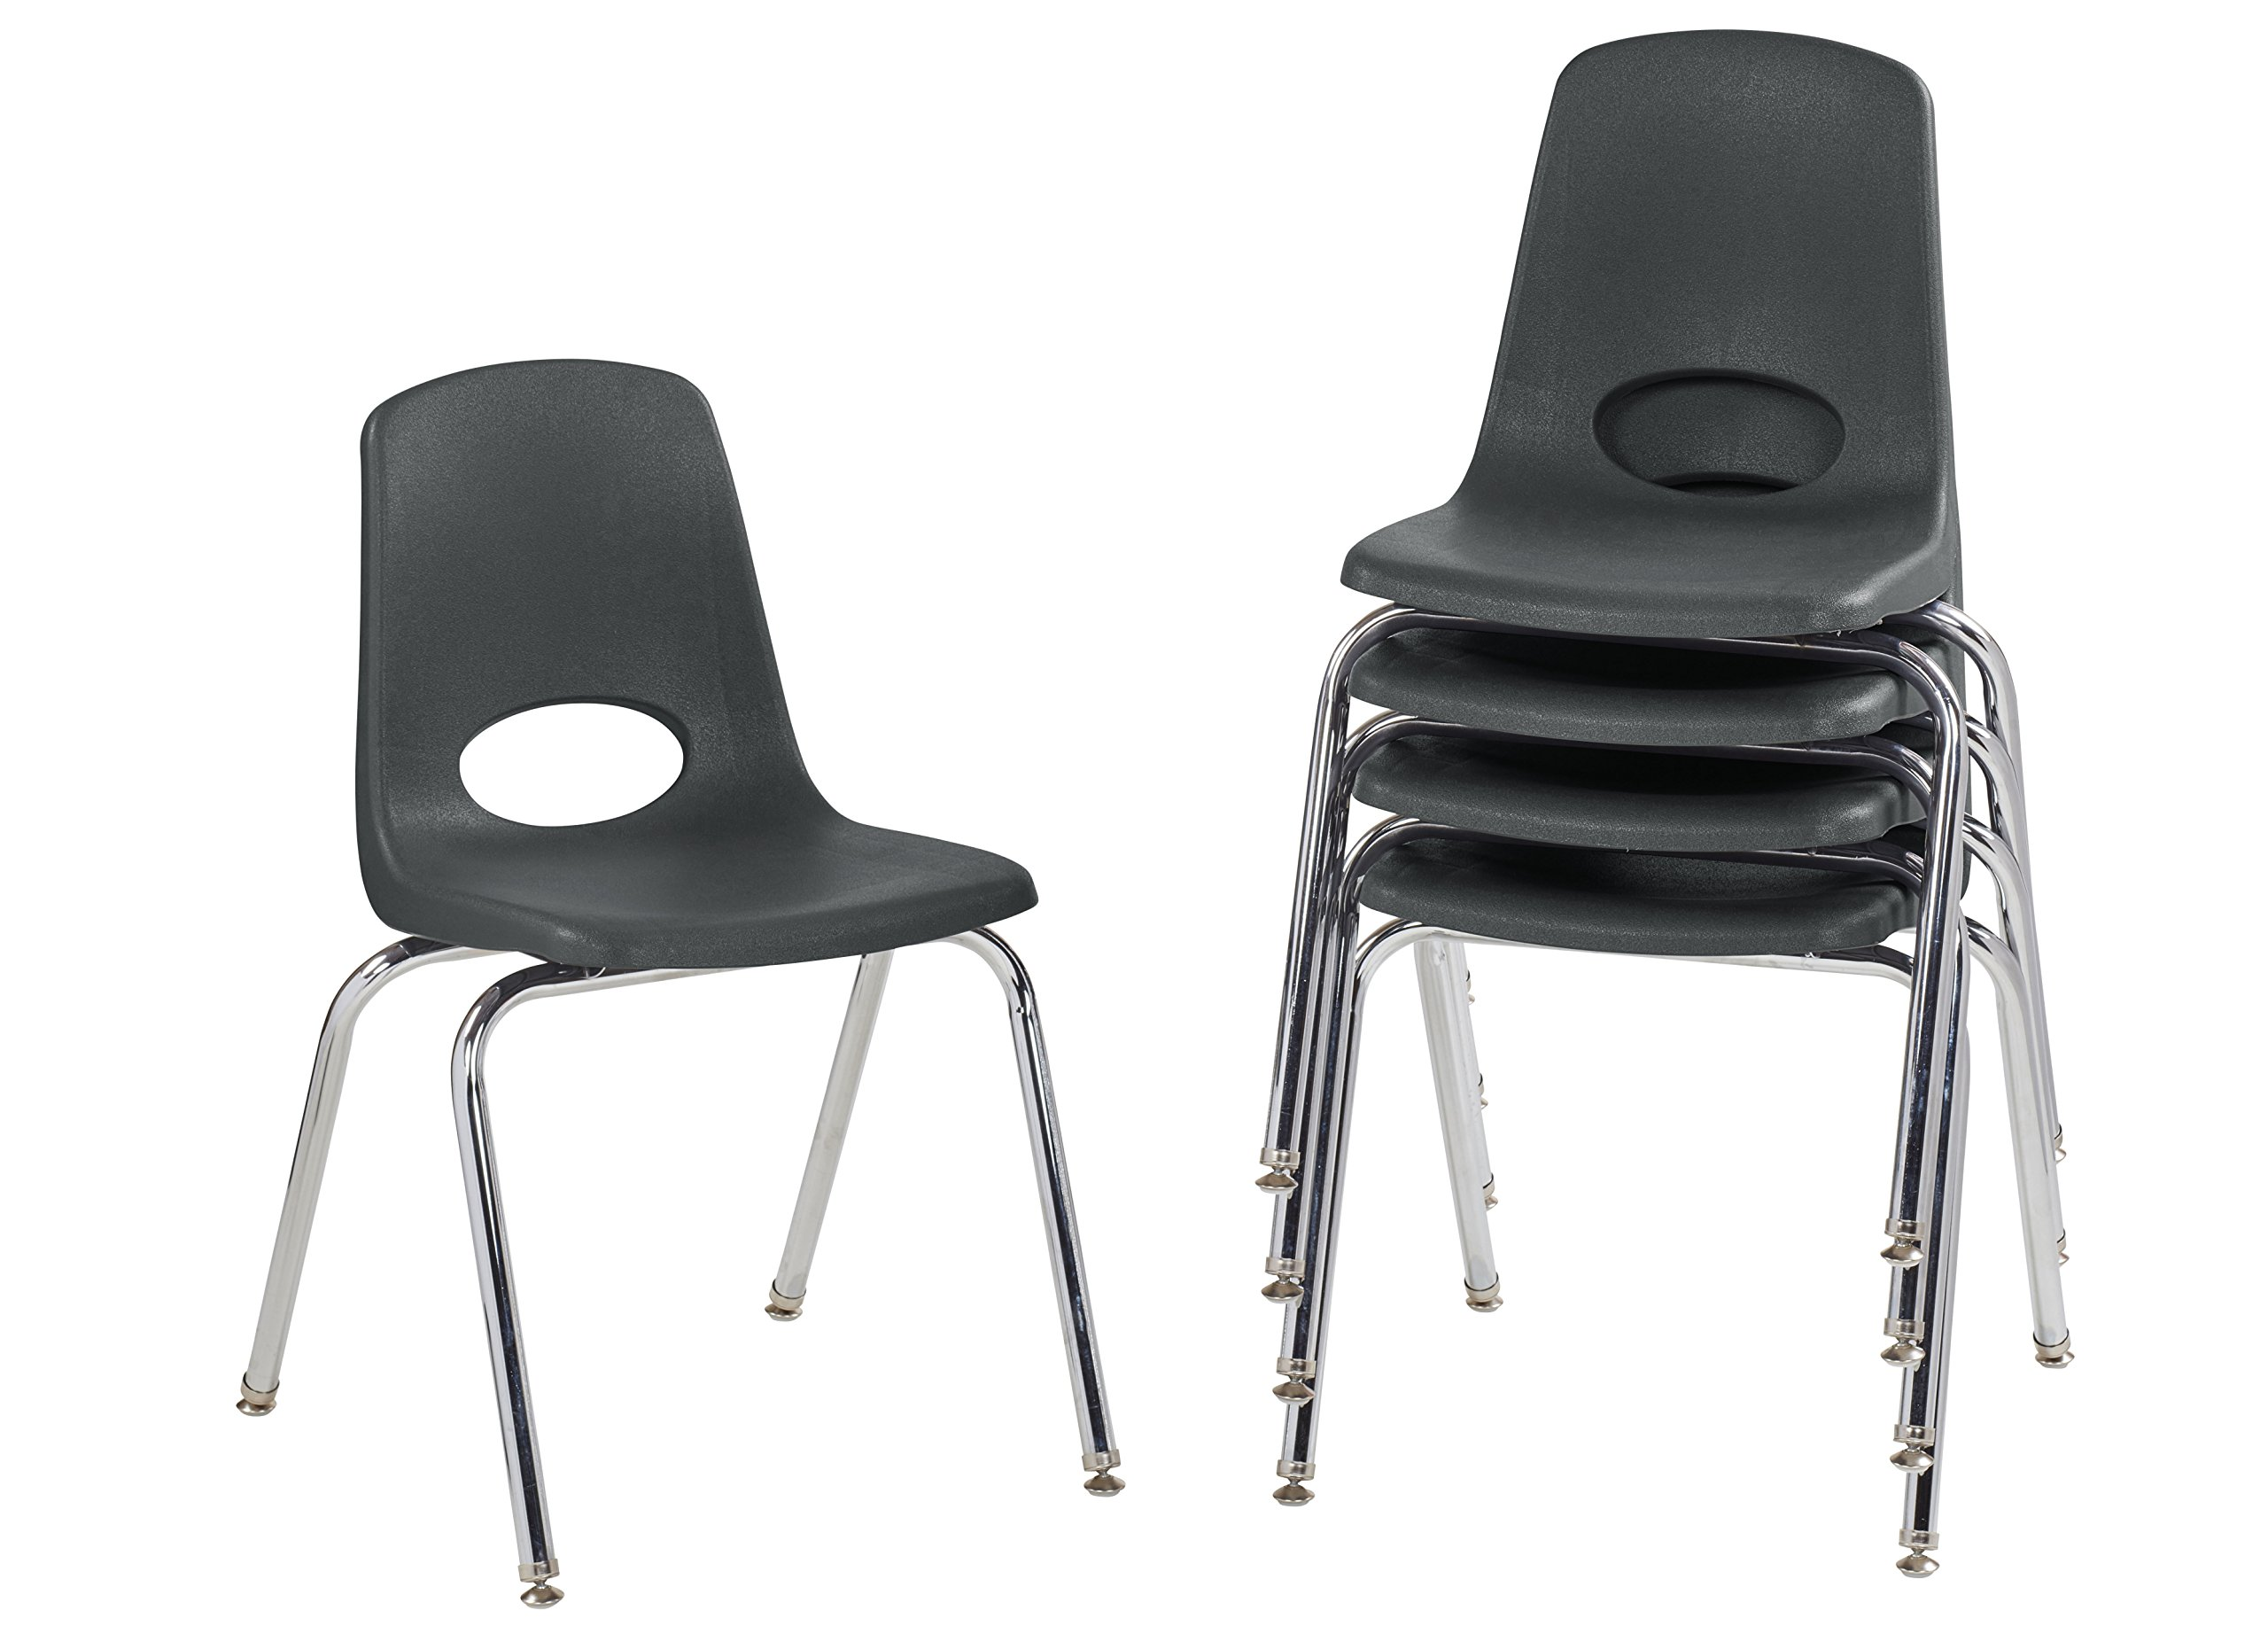 chair leg glides cover rentals near paterson nj cheap nylon find deals on get quotations ecr4kids 18 school stack chrome legs with swivel black